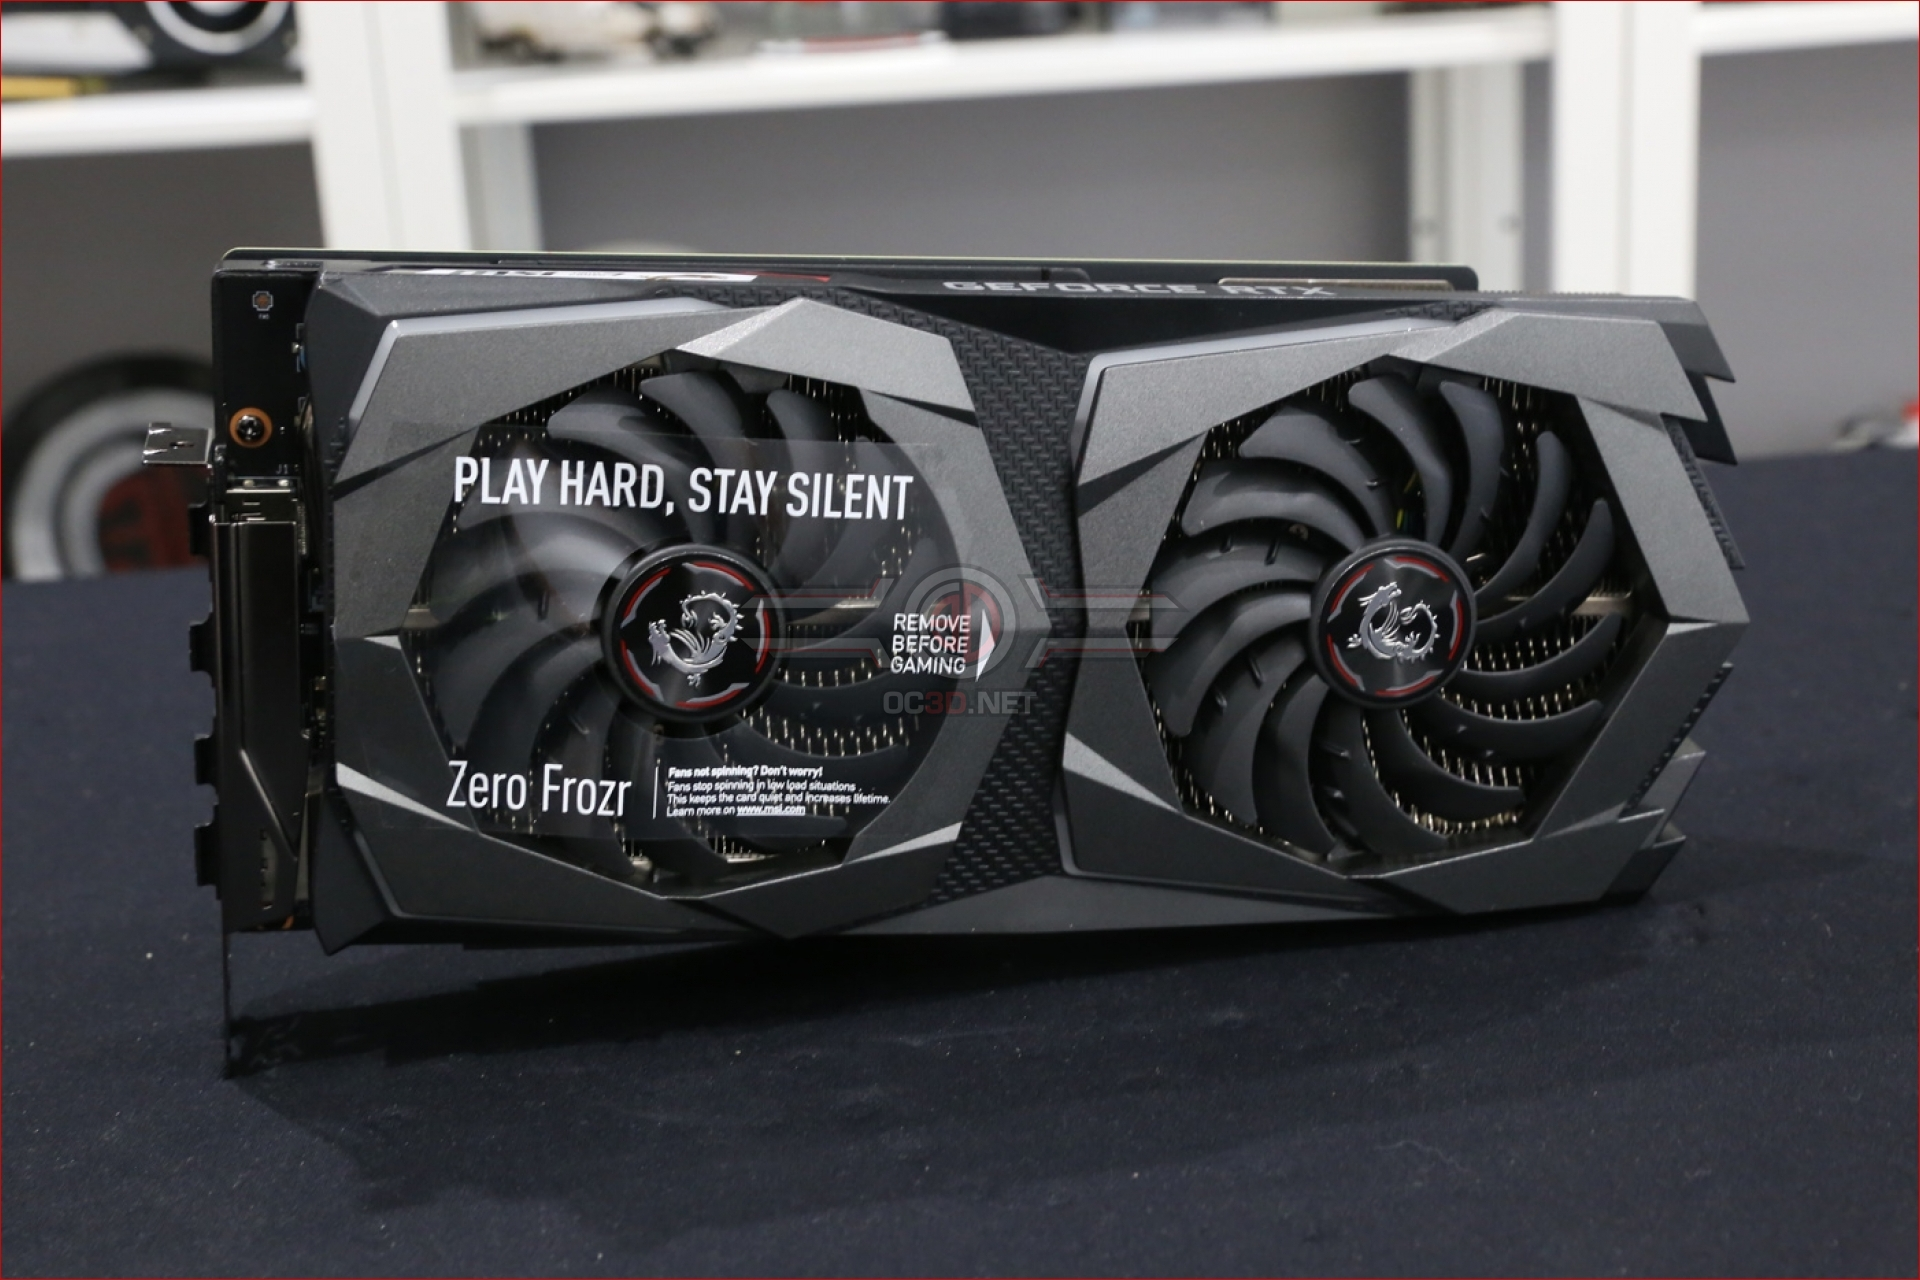 MSI RTX 2070 Gaming Z Review | Up Close | GPU & Displays | OC3D Review